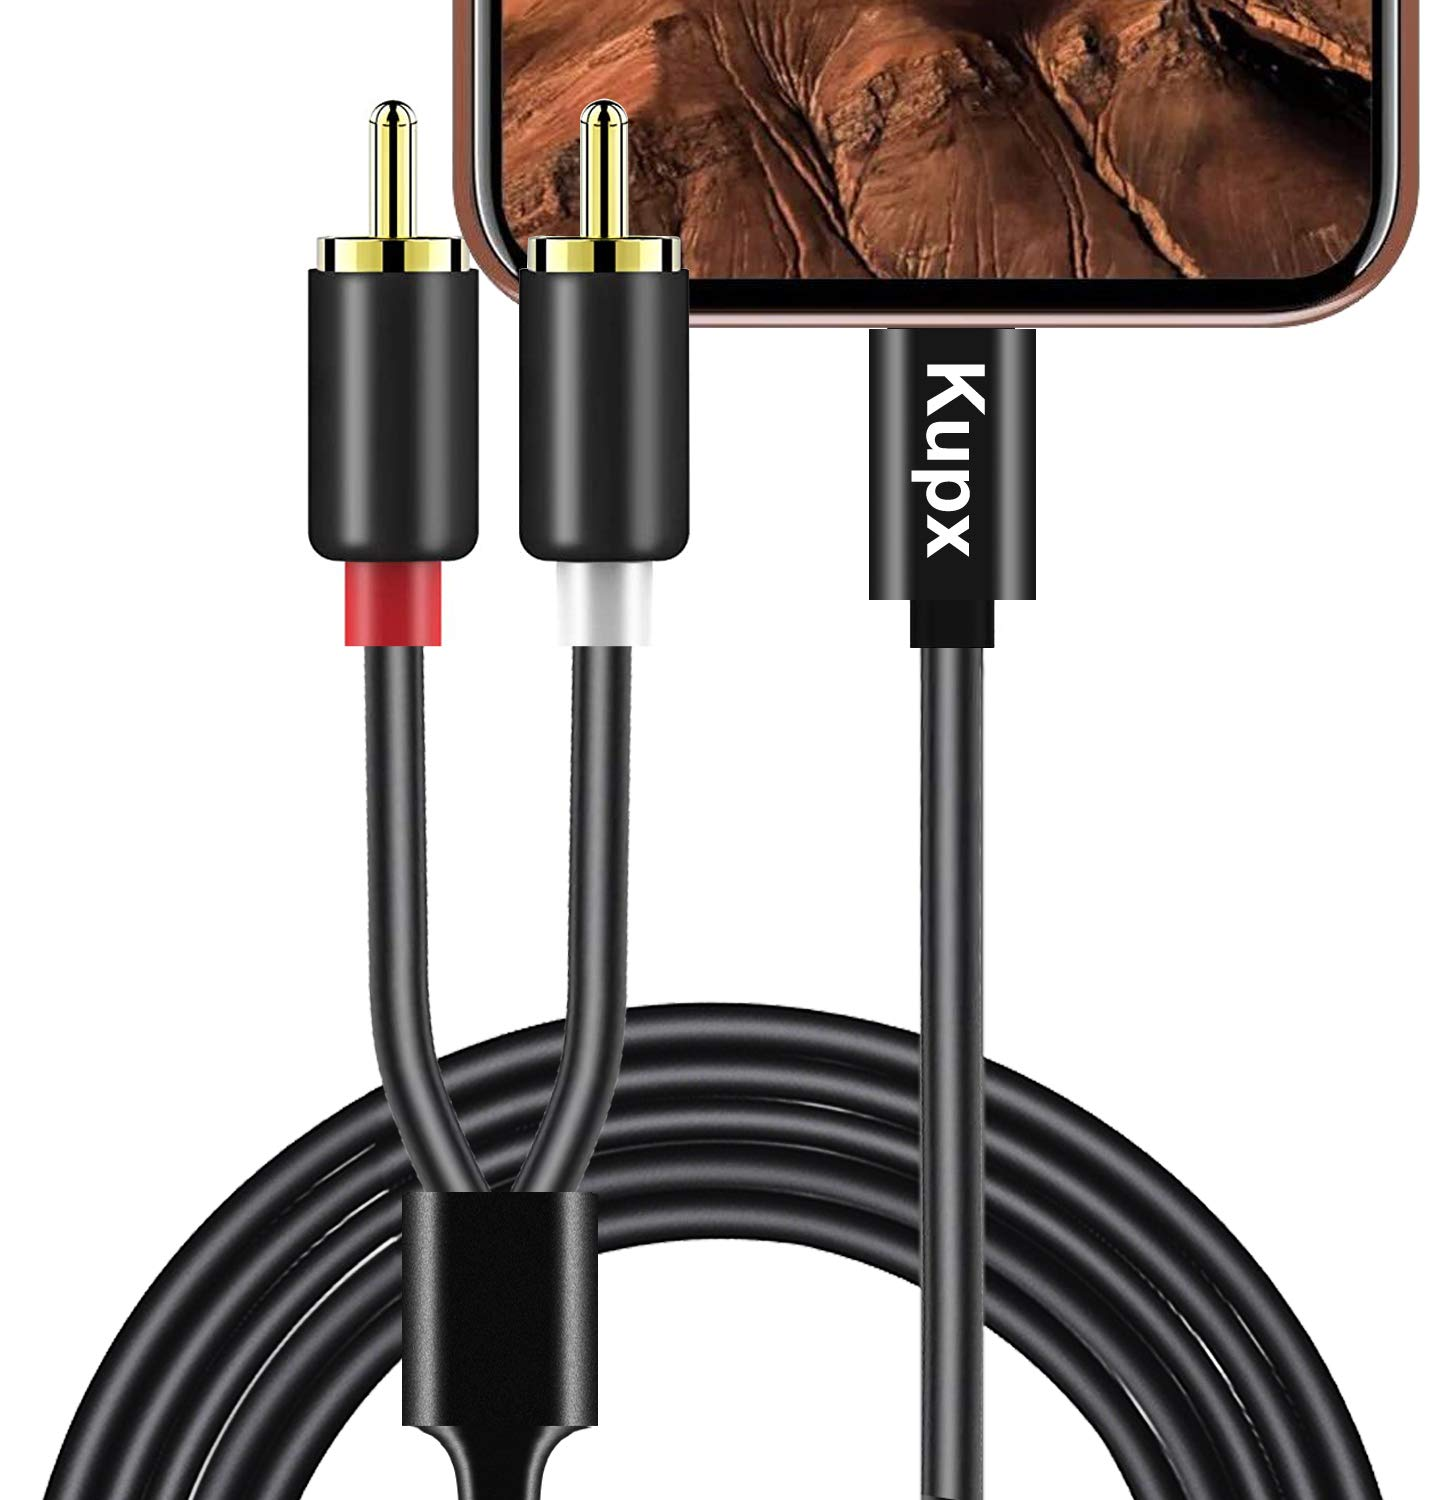 Kupx 4ft 2-Male RCA to IOS Adapter Audio Stereo Cable Aux Cord Compatible with iPhone 11 X XR XS MAX 8 7 S Plus Pad Pro Mini Air Pod Touch for Home Speakers Car Aux Speakers Power Amplifier and Others